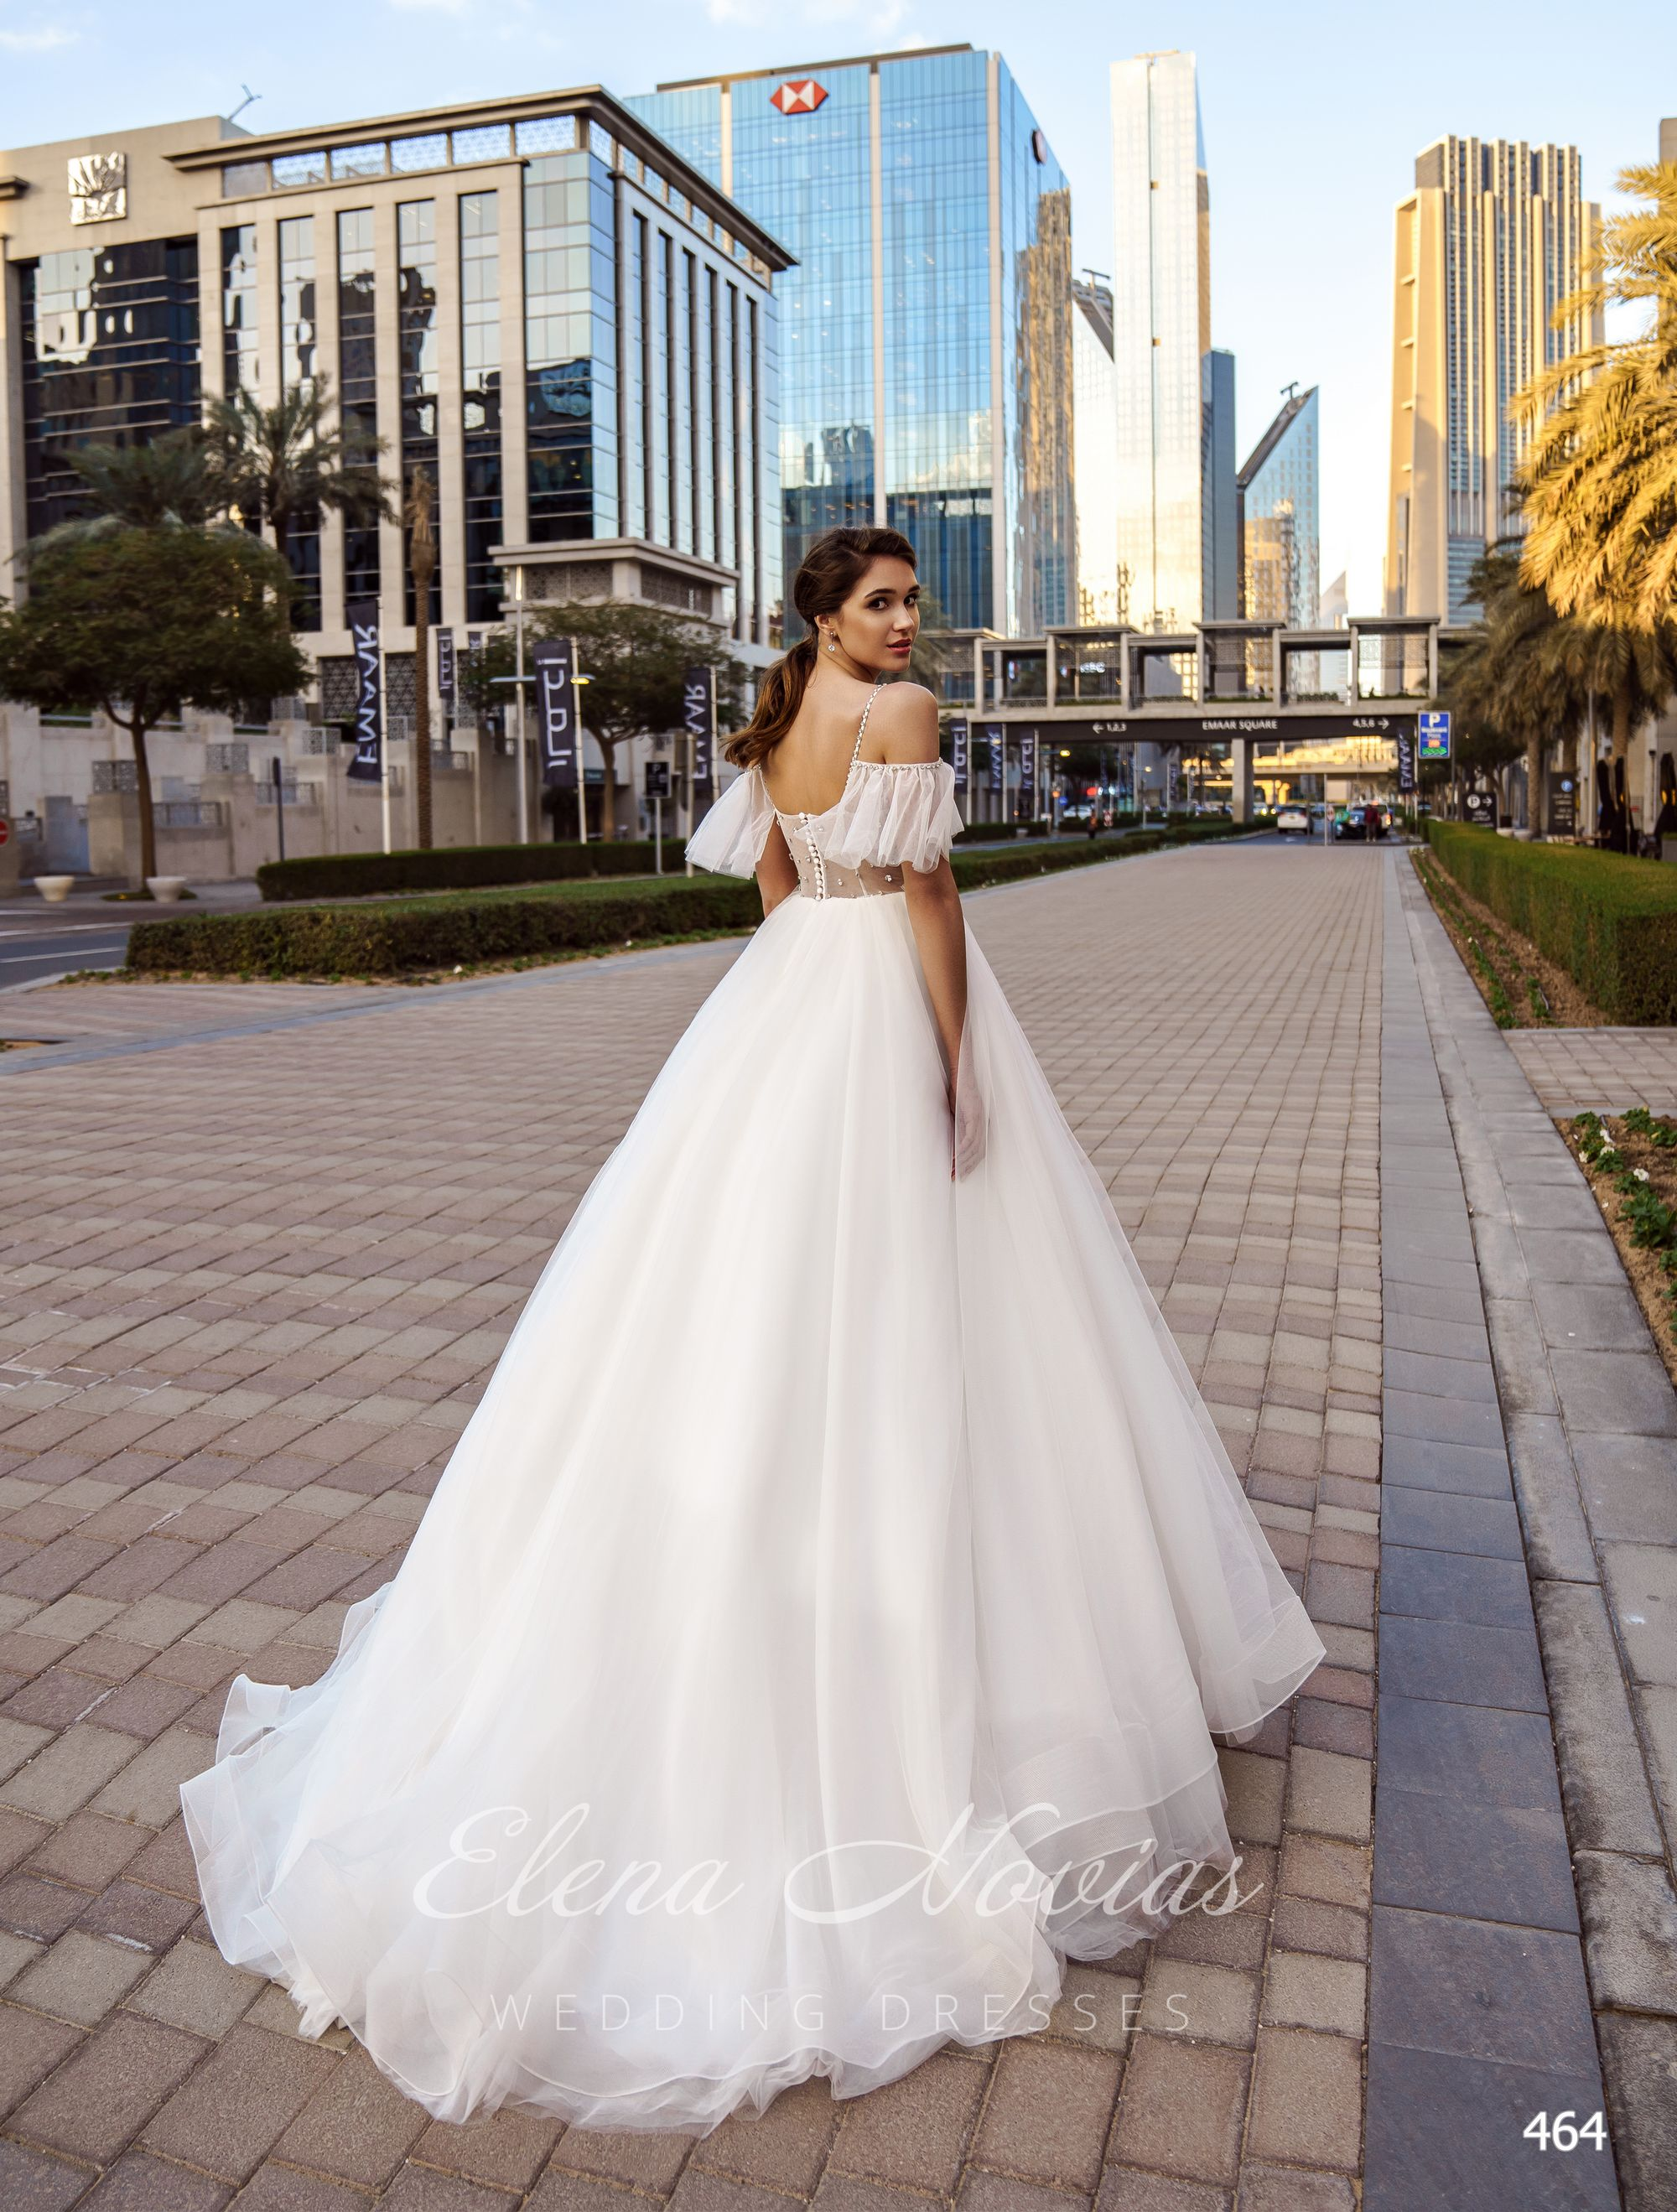 Wedding dresses 464 2